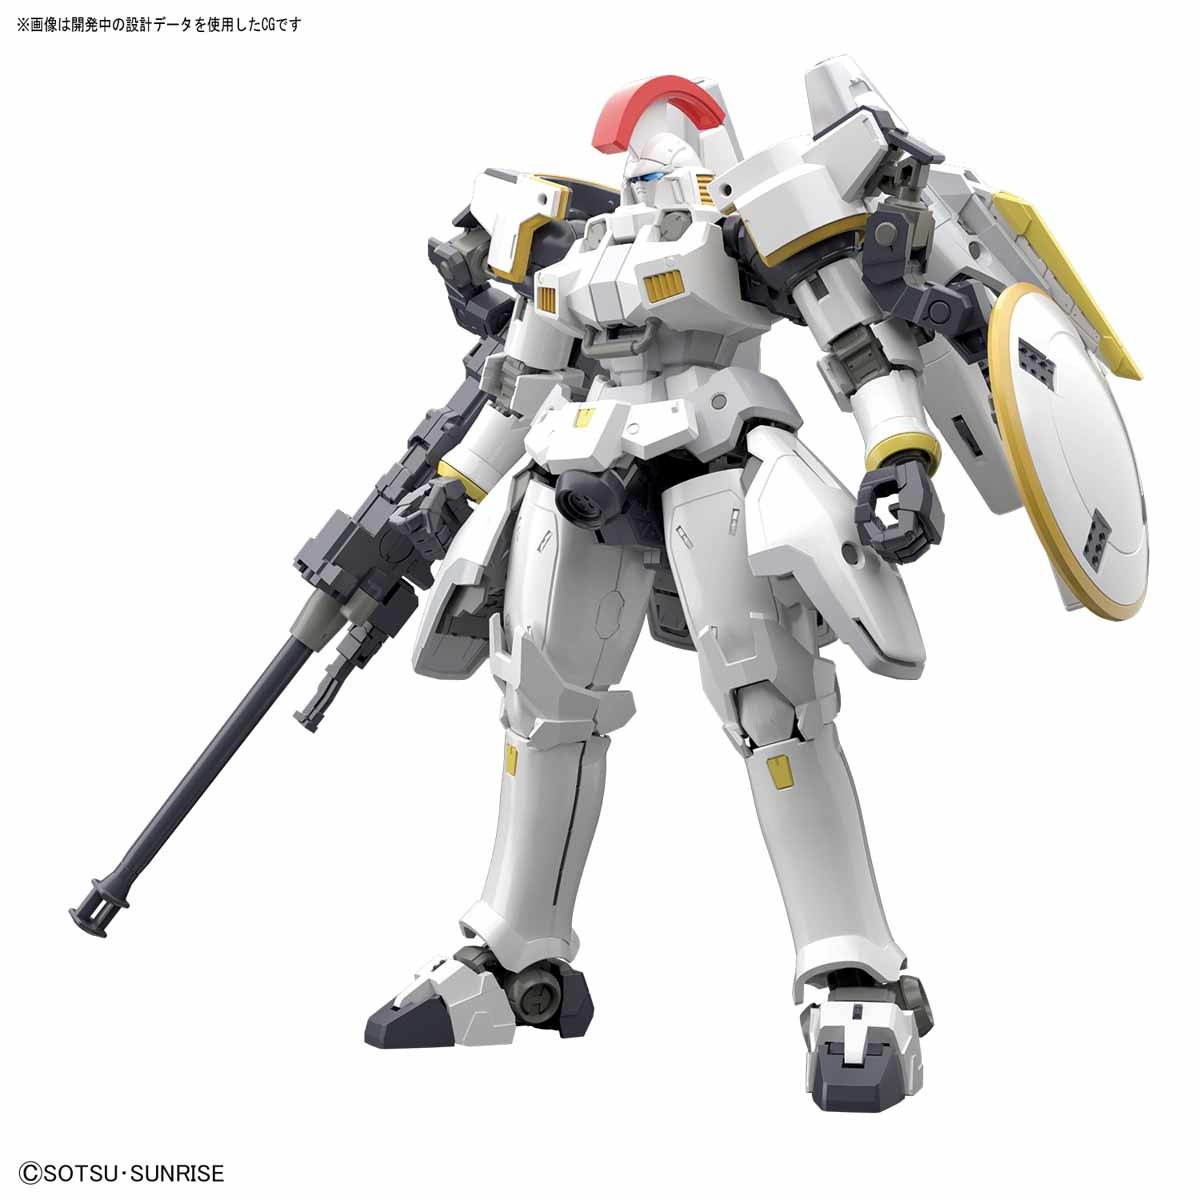 RG 1/144 OZ-00MS TALLGEESE EW: Many Big Size Official Images, Info Release | GUNJAP